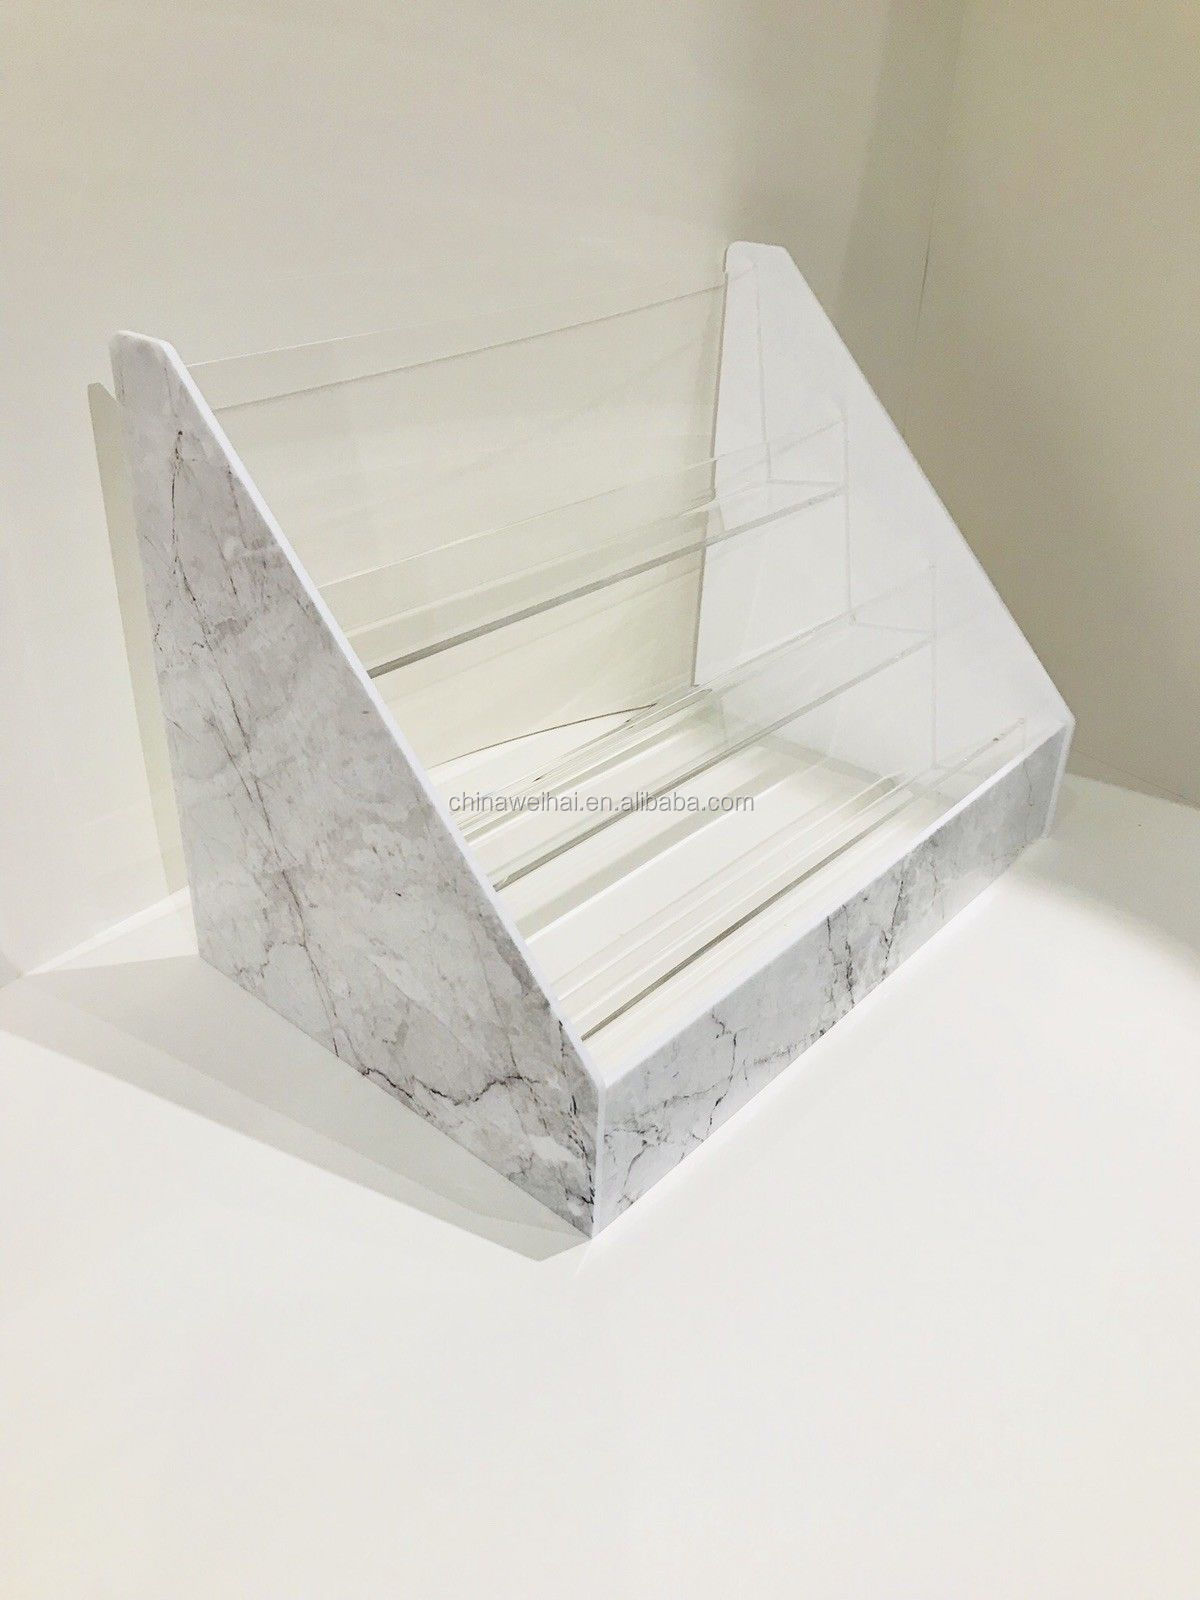 3 Tiers Marble Effect Acrylic Eyelash Display Rack Storage